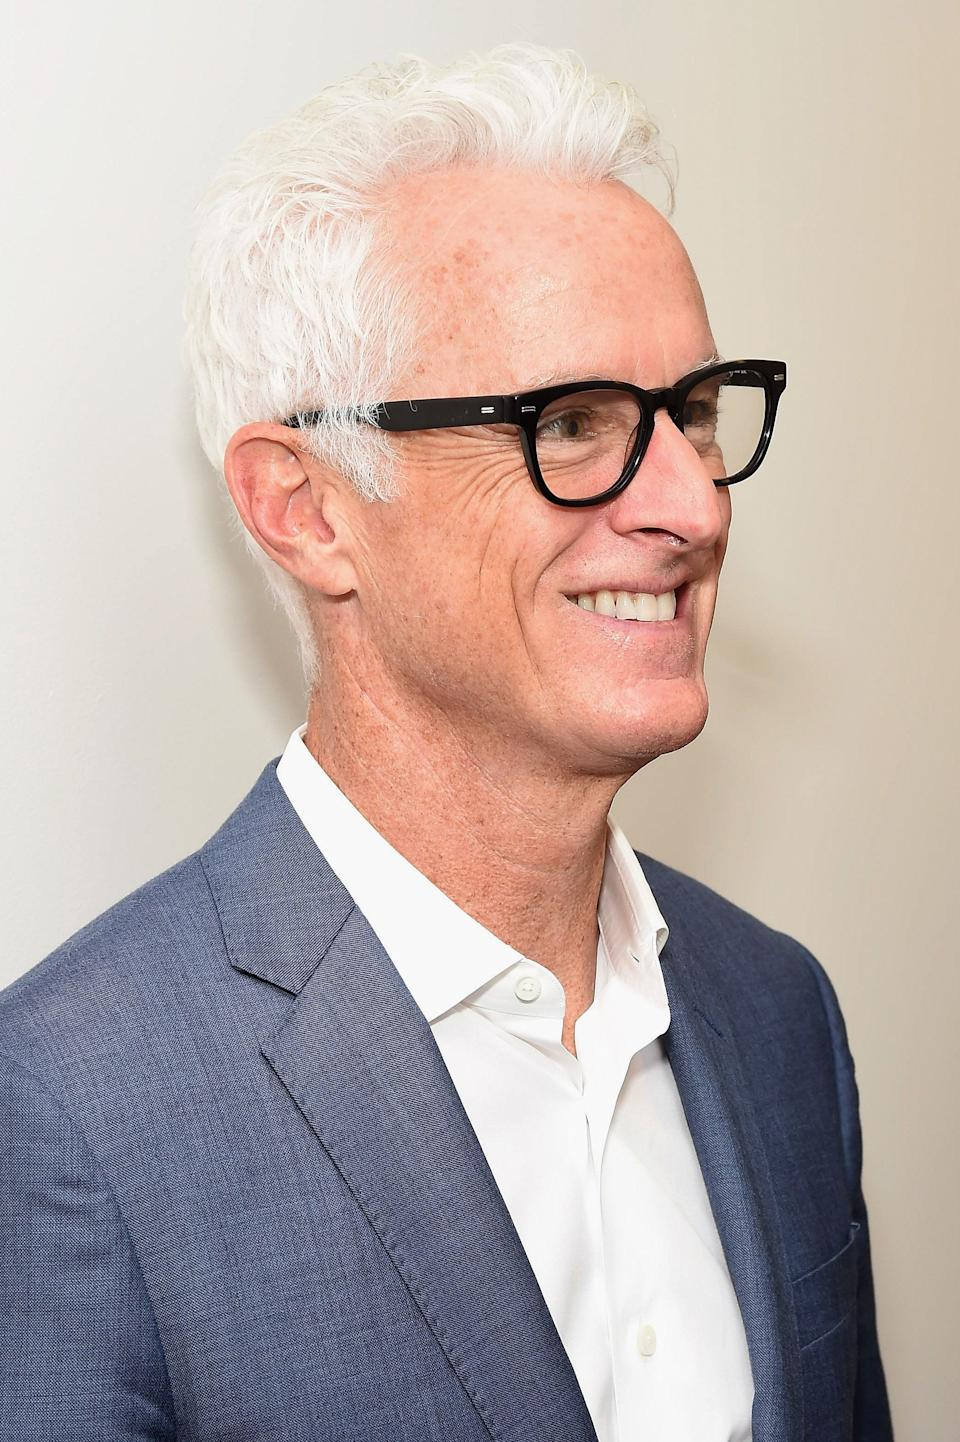 Since 'Desperate Housewives', John's career has gone from strength to strength. He has starred as Roger Sterling in 'Mad Men', earning himself two Emmy nominations.<br /><br />His film credits in the past few years have also included 'Spotlight', 'Ant-Man' and the sequel to Seth MacFarlane's 'Ted'.